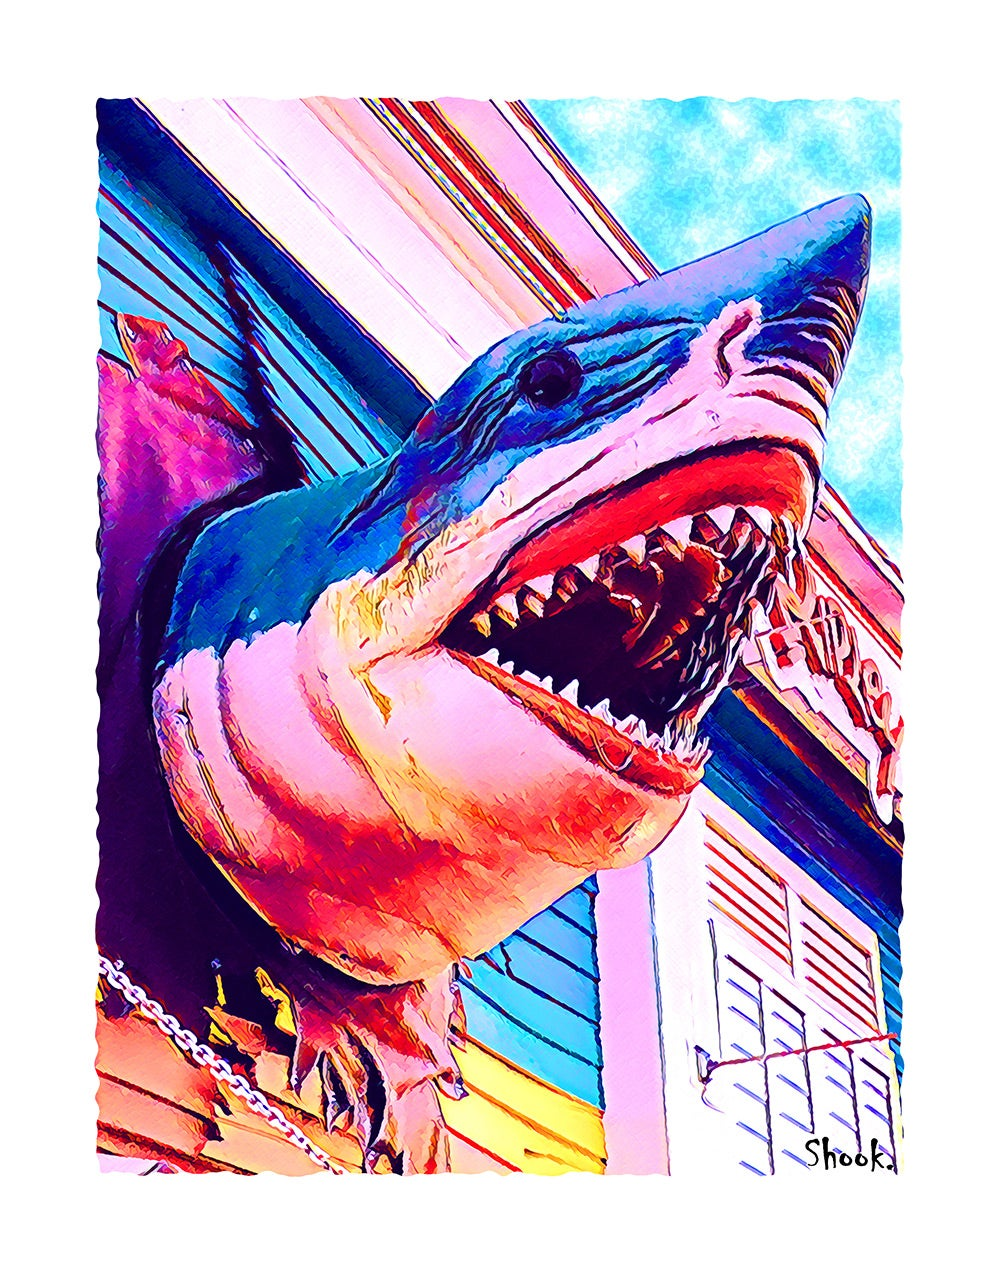 Ripley's Believe it or Not! Shark, Ocean City MD Giclée Art Print - (Multi-Size Options)